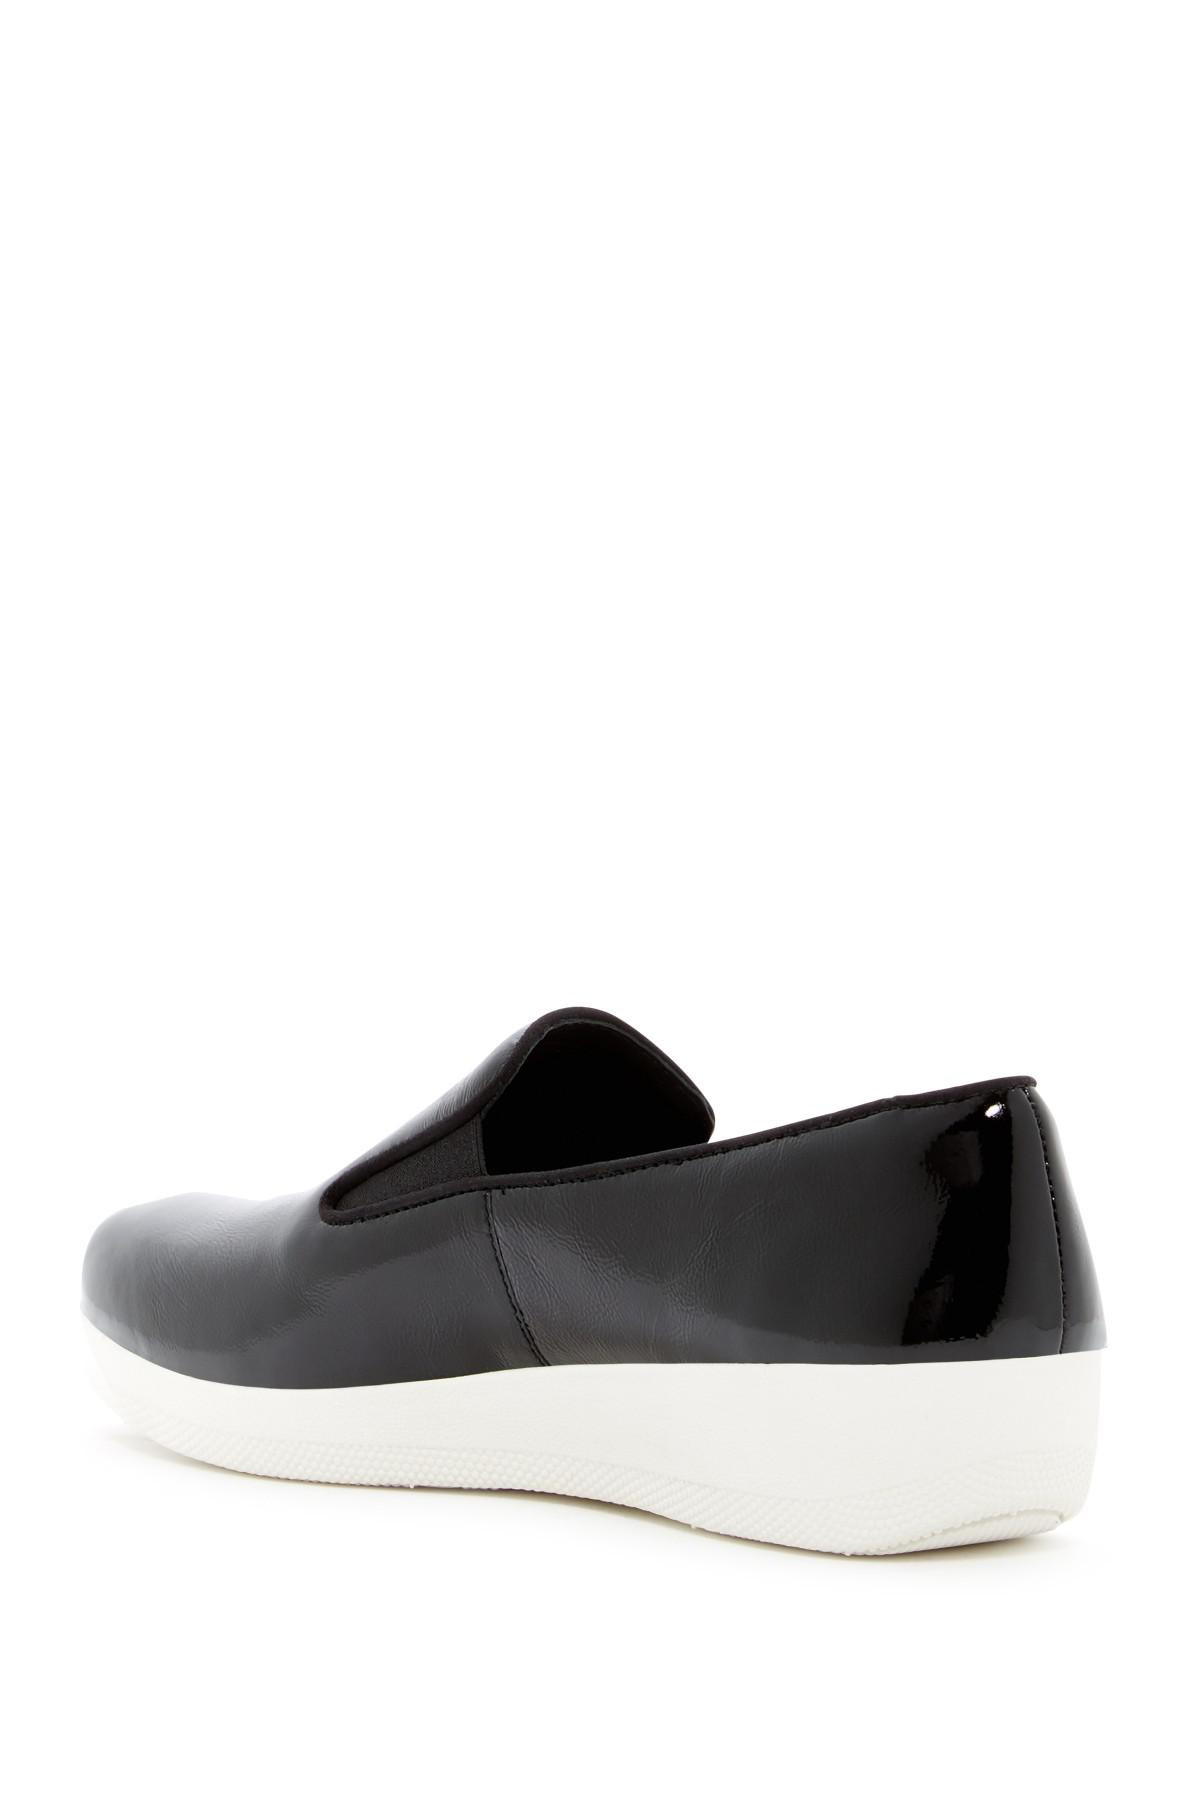 Fitflop Superskate Crinkle Leather Sneaker Loafer 3X1Jyy